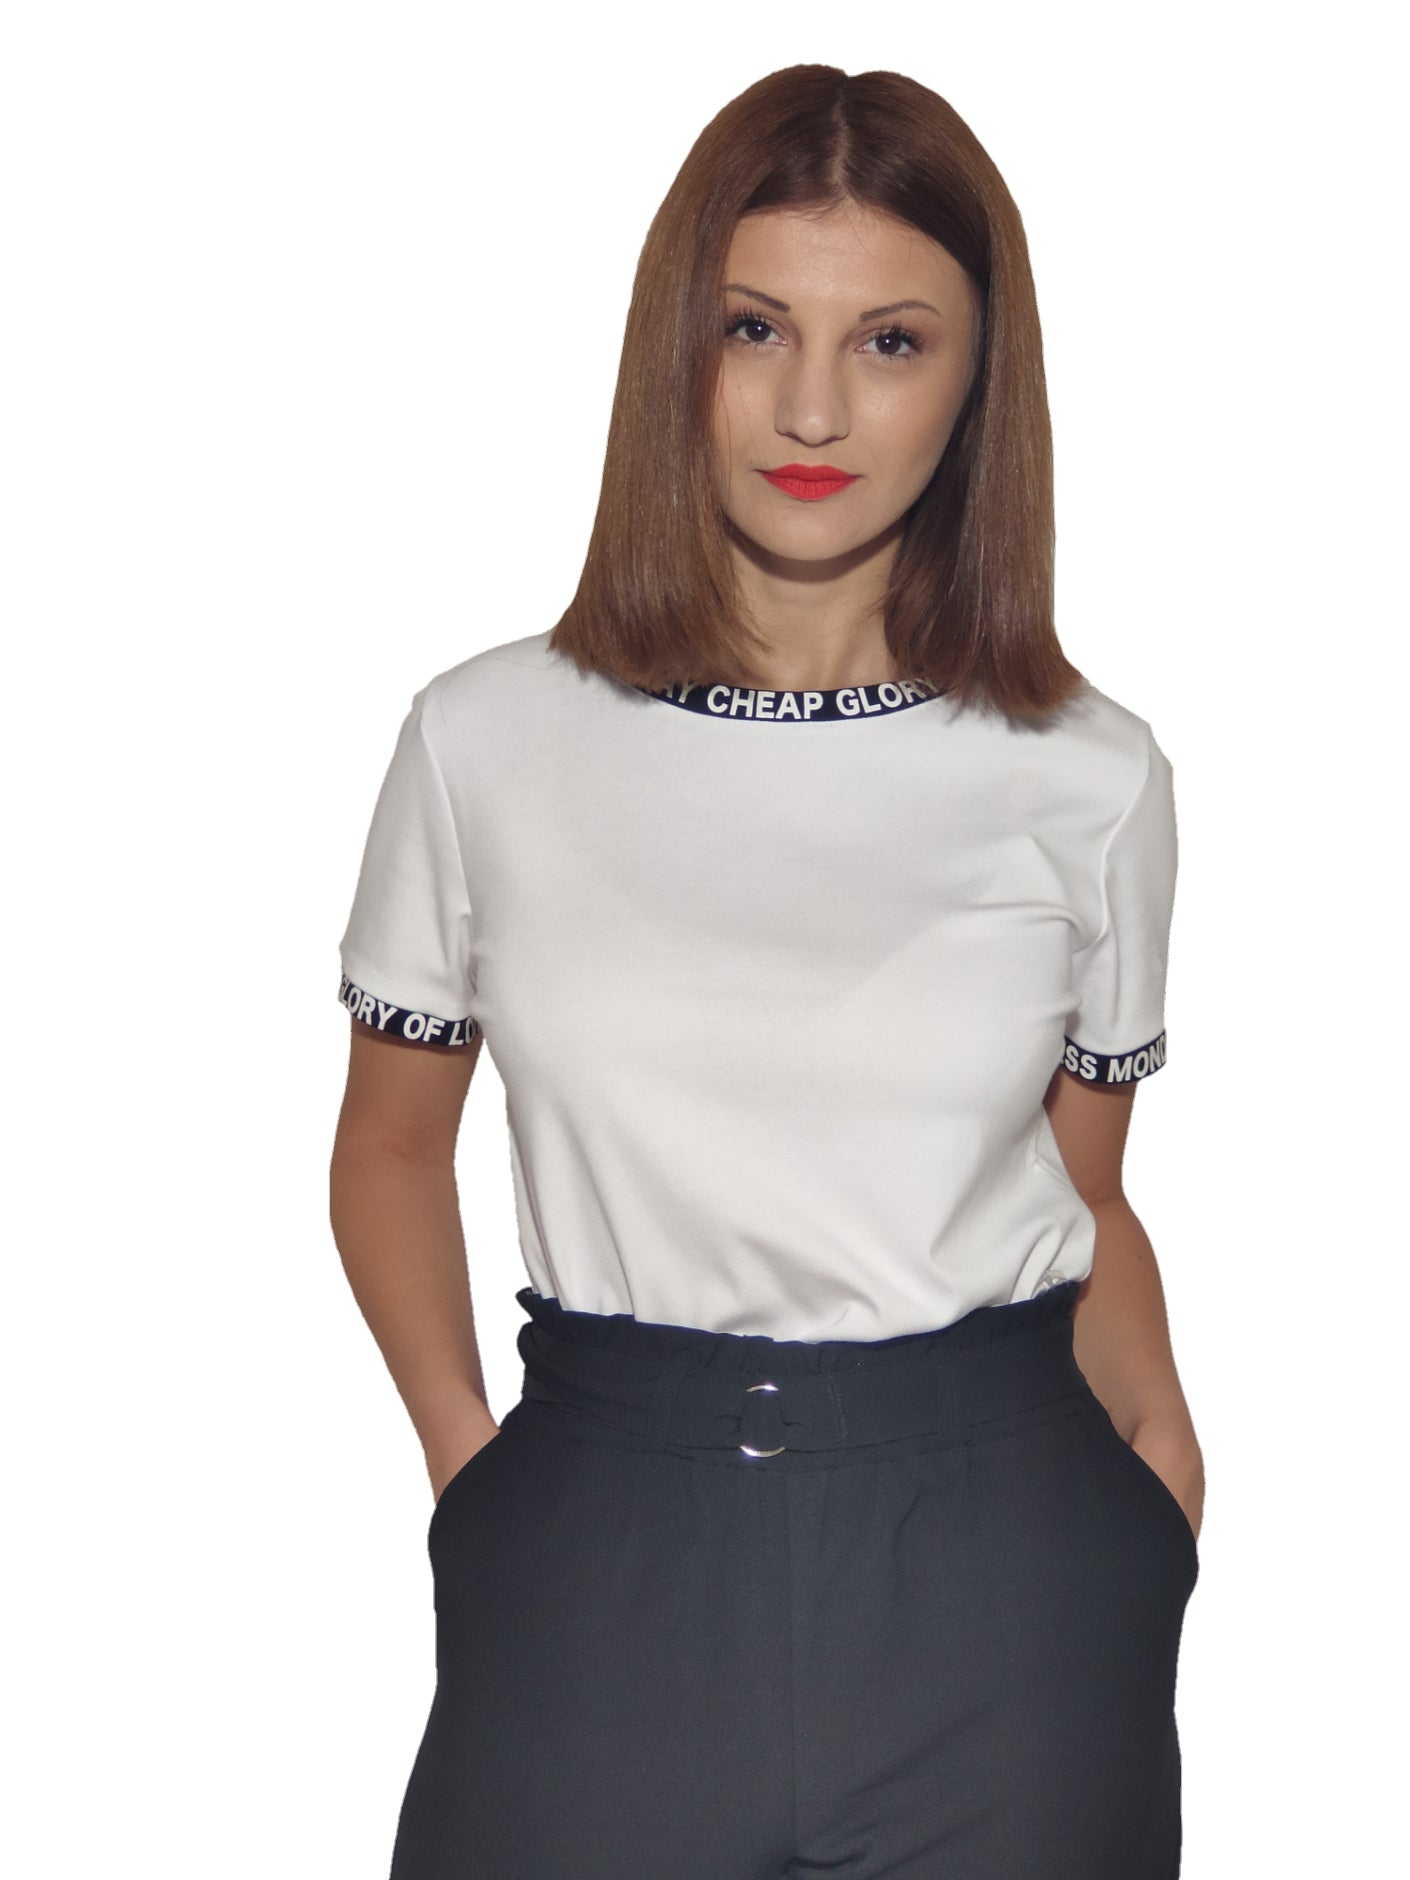 brunet-girl-wears-a-white-top-with-letter-motive-front